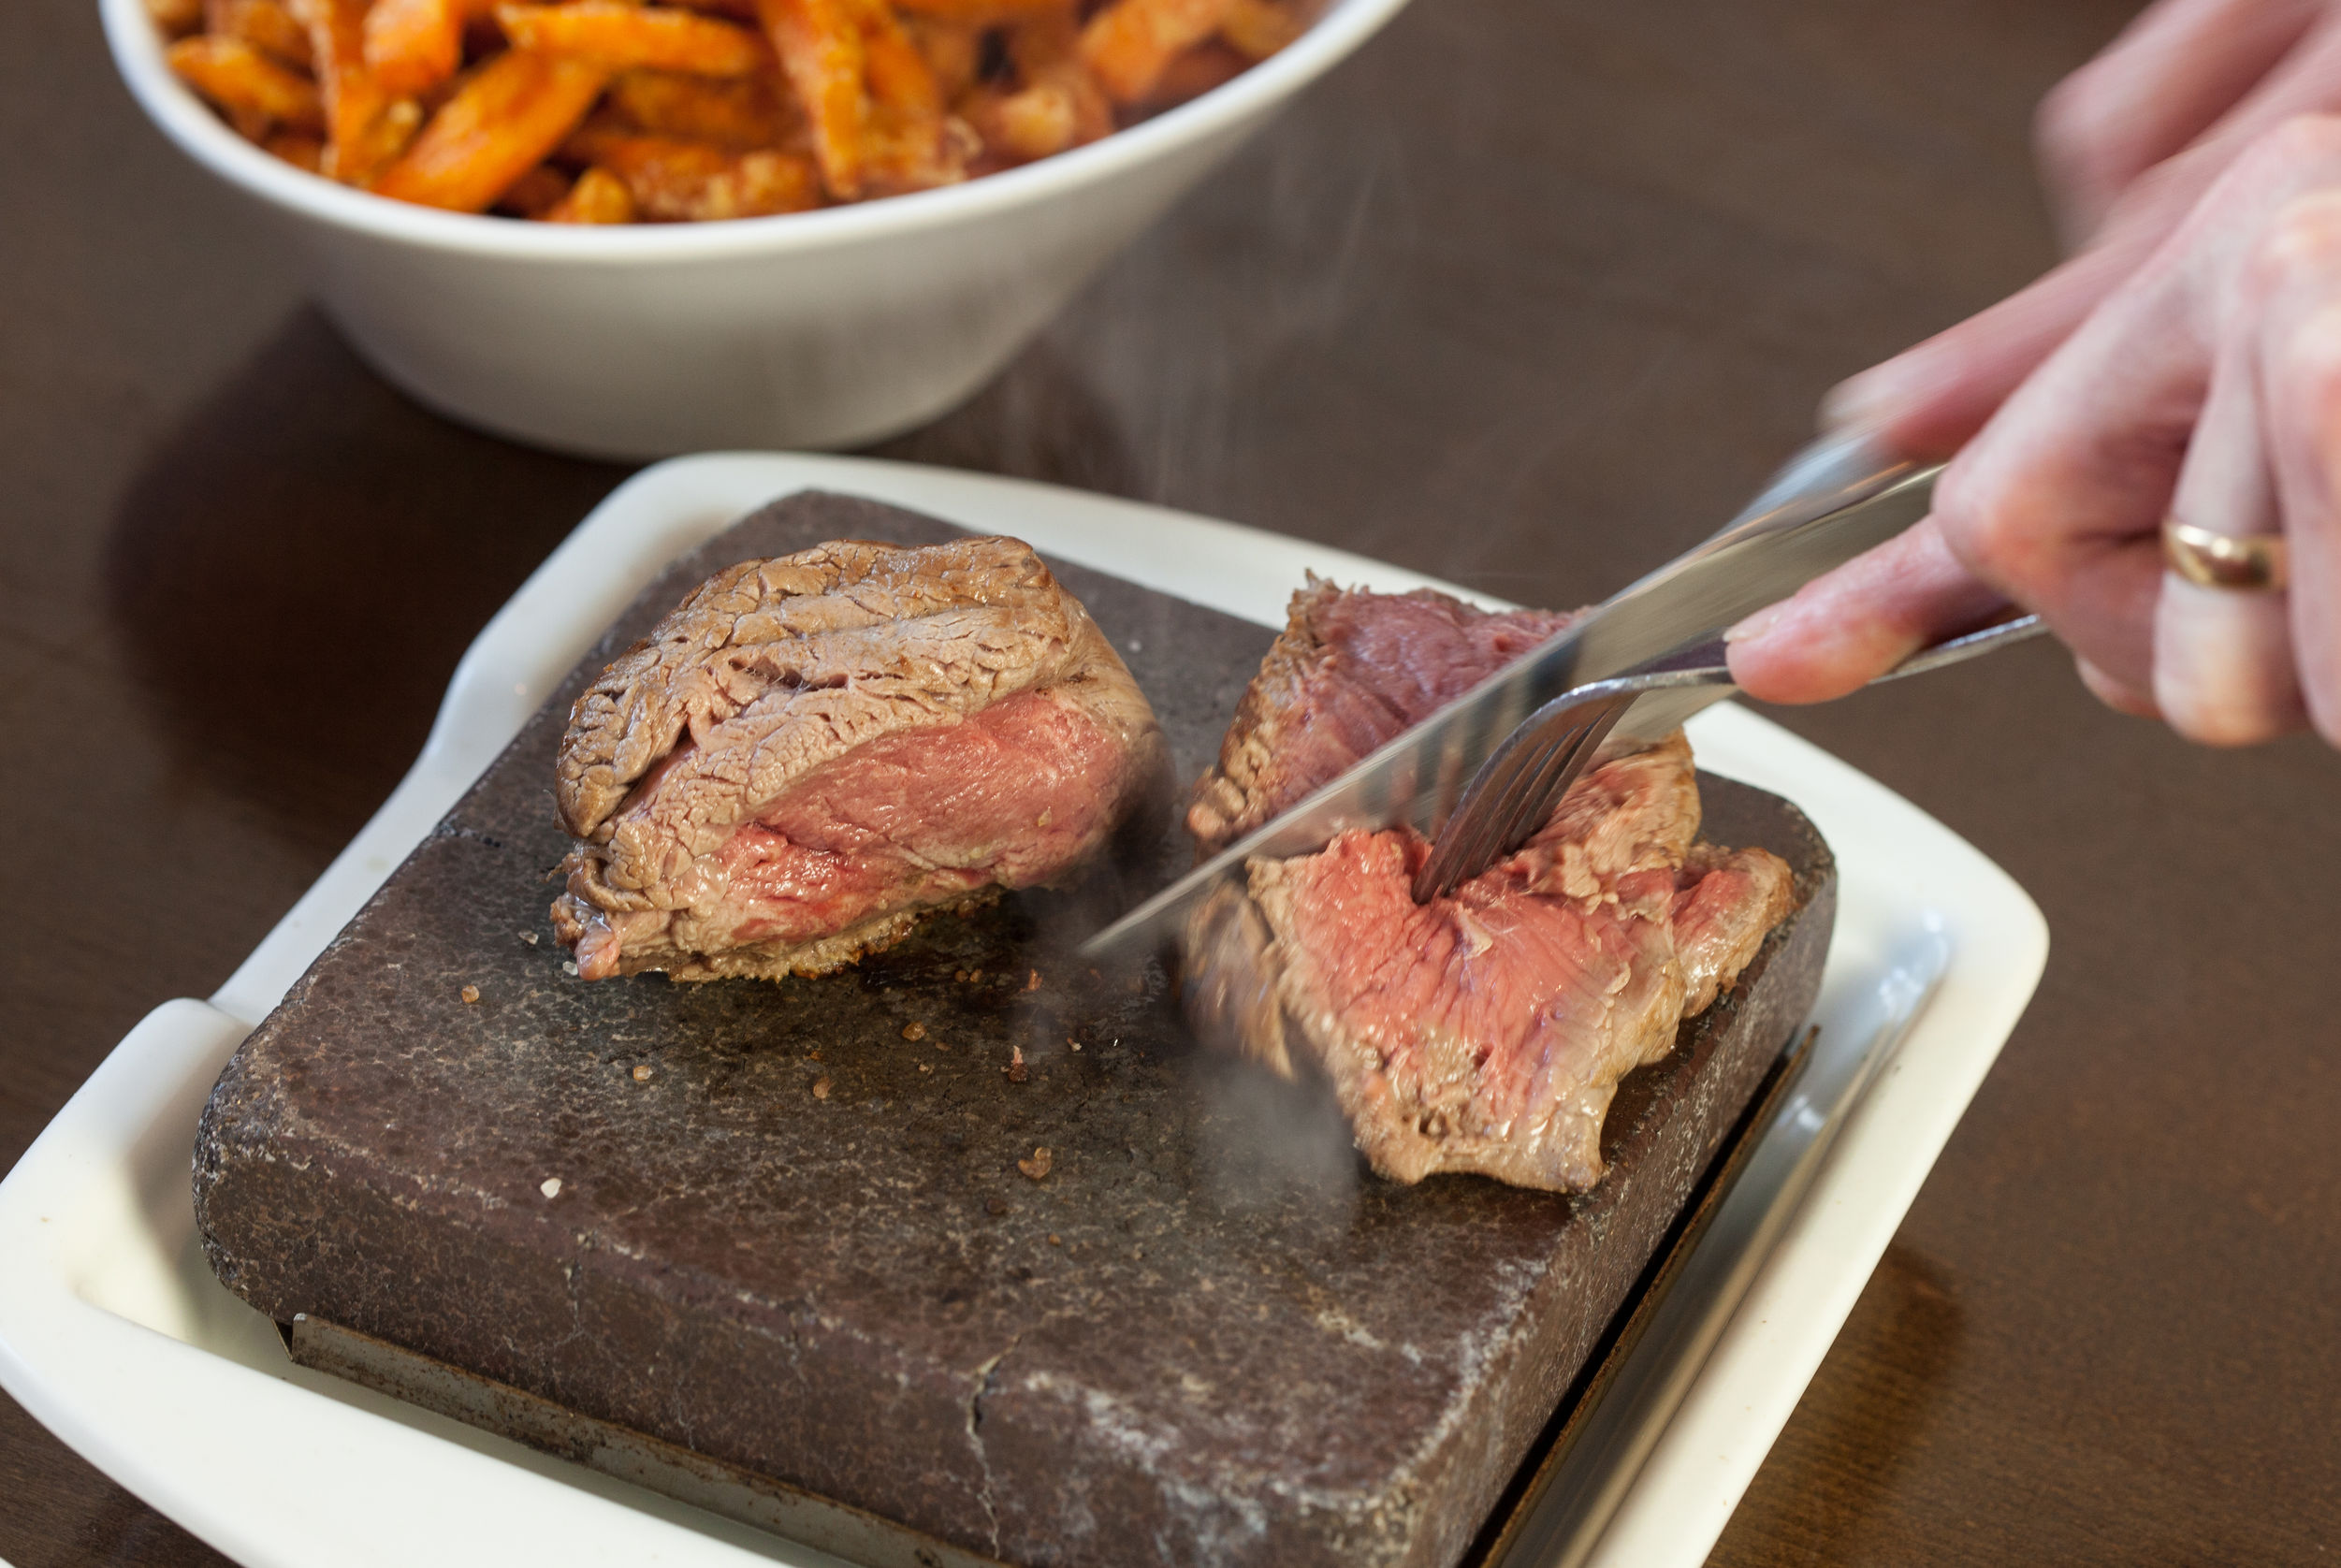 Steak sizzling on hot stone plate being sliced served in classy restaurant